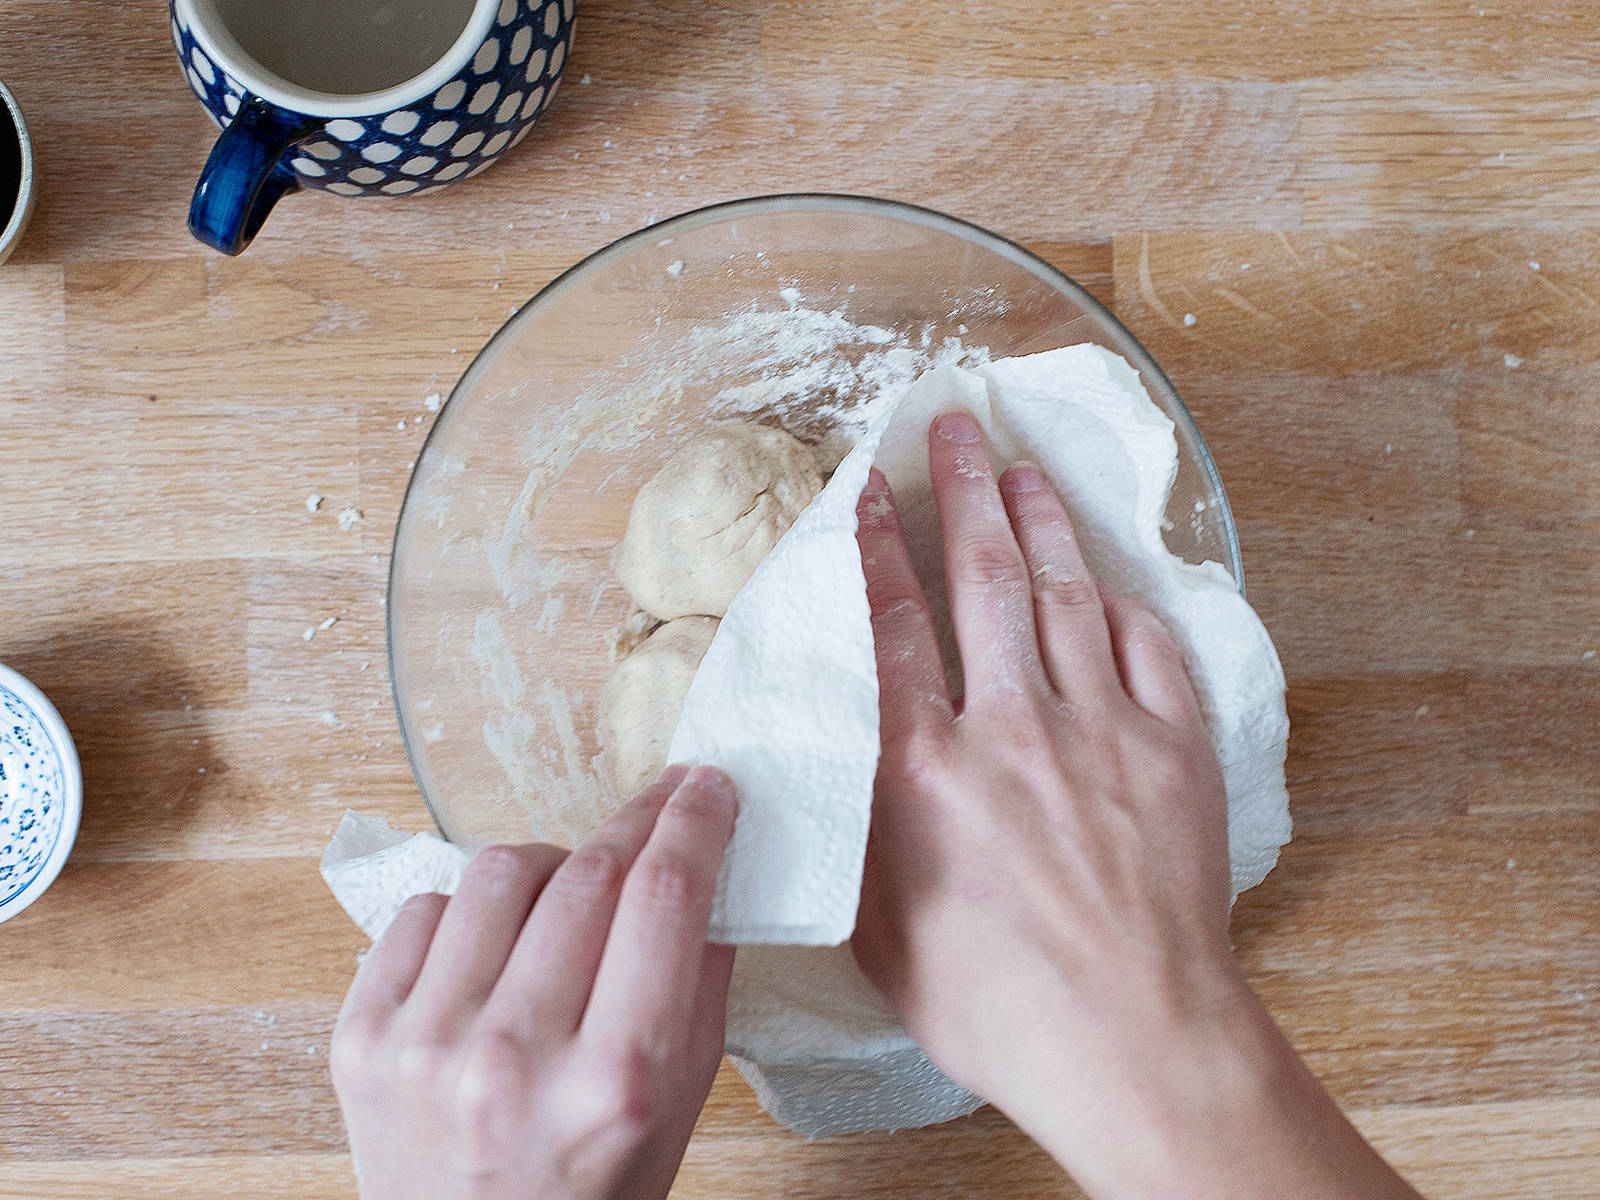 Portion into dough balls about the size of a tennis ball, cover with a wet paper towel and leave for about 10 min. to rest.